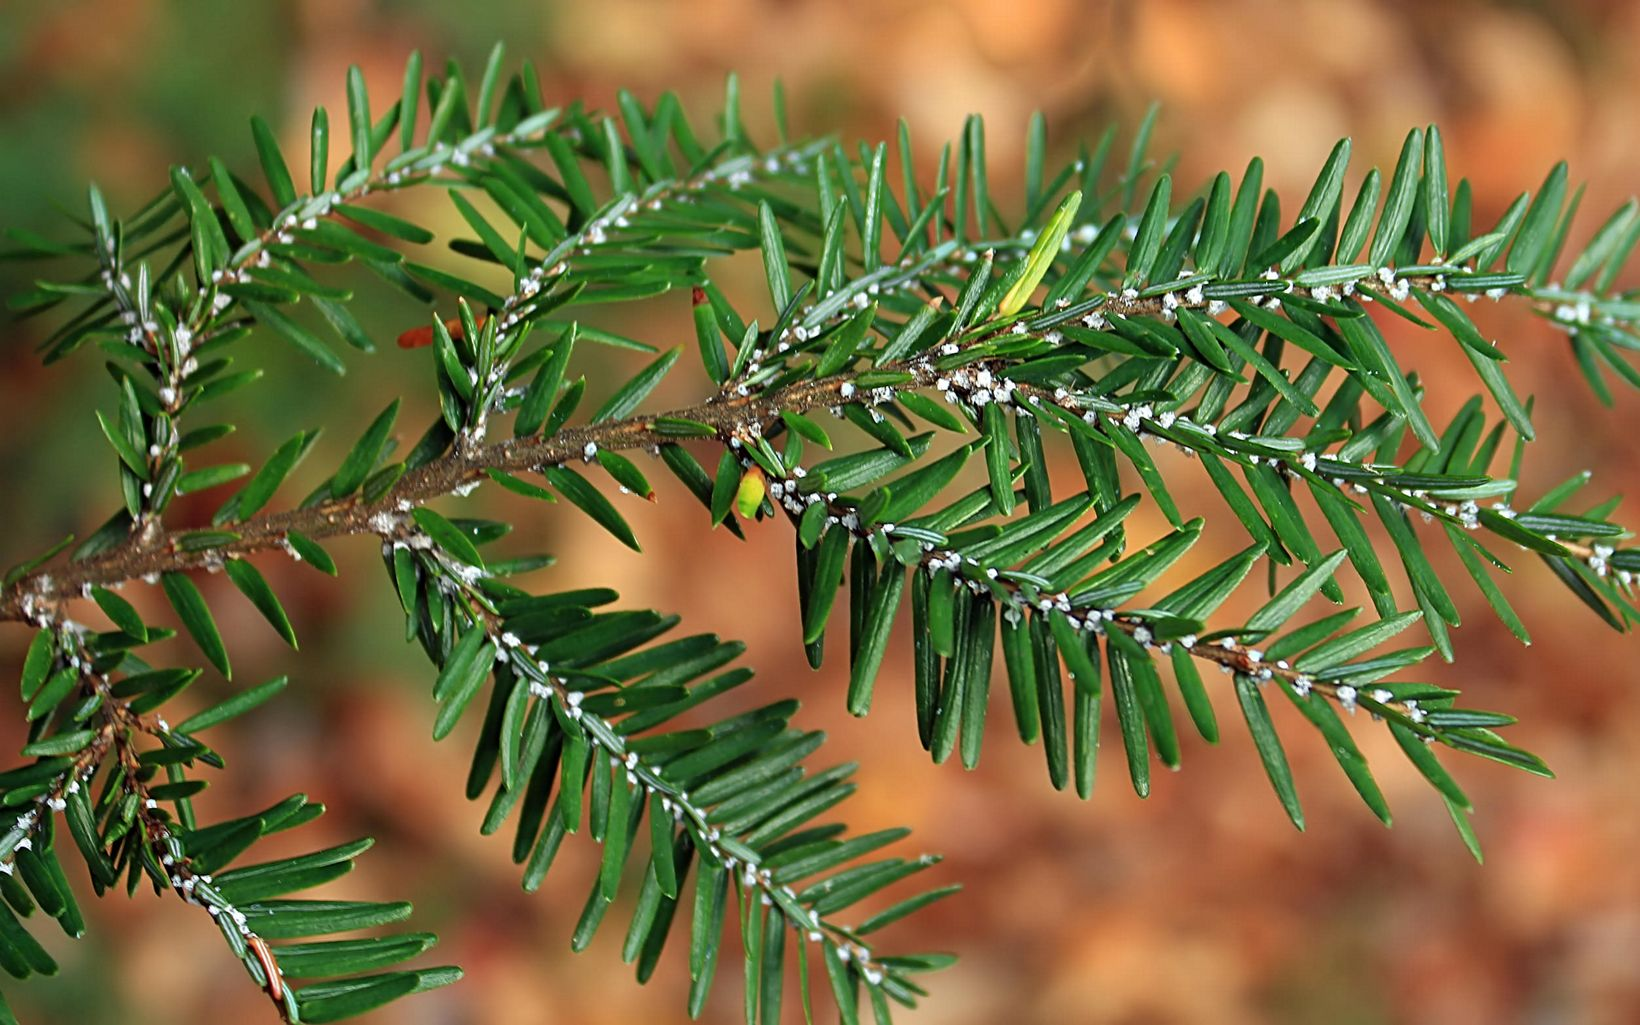 The Hemlock Woolly Adelgid moved into Kentucky in 2007.